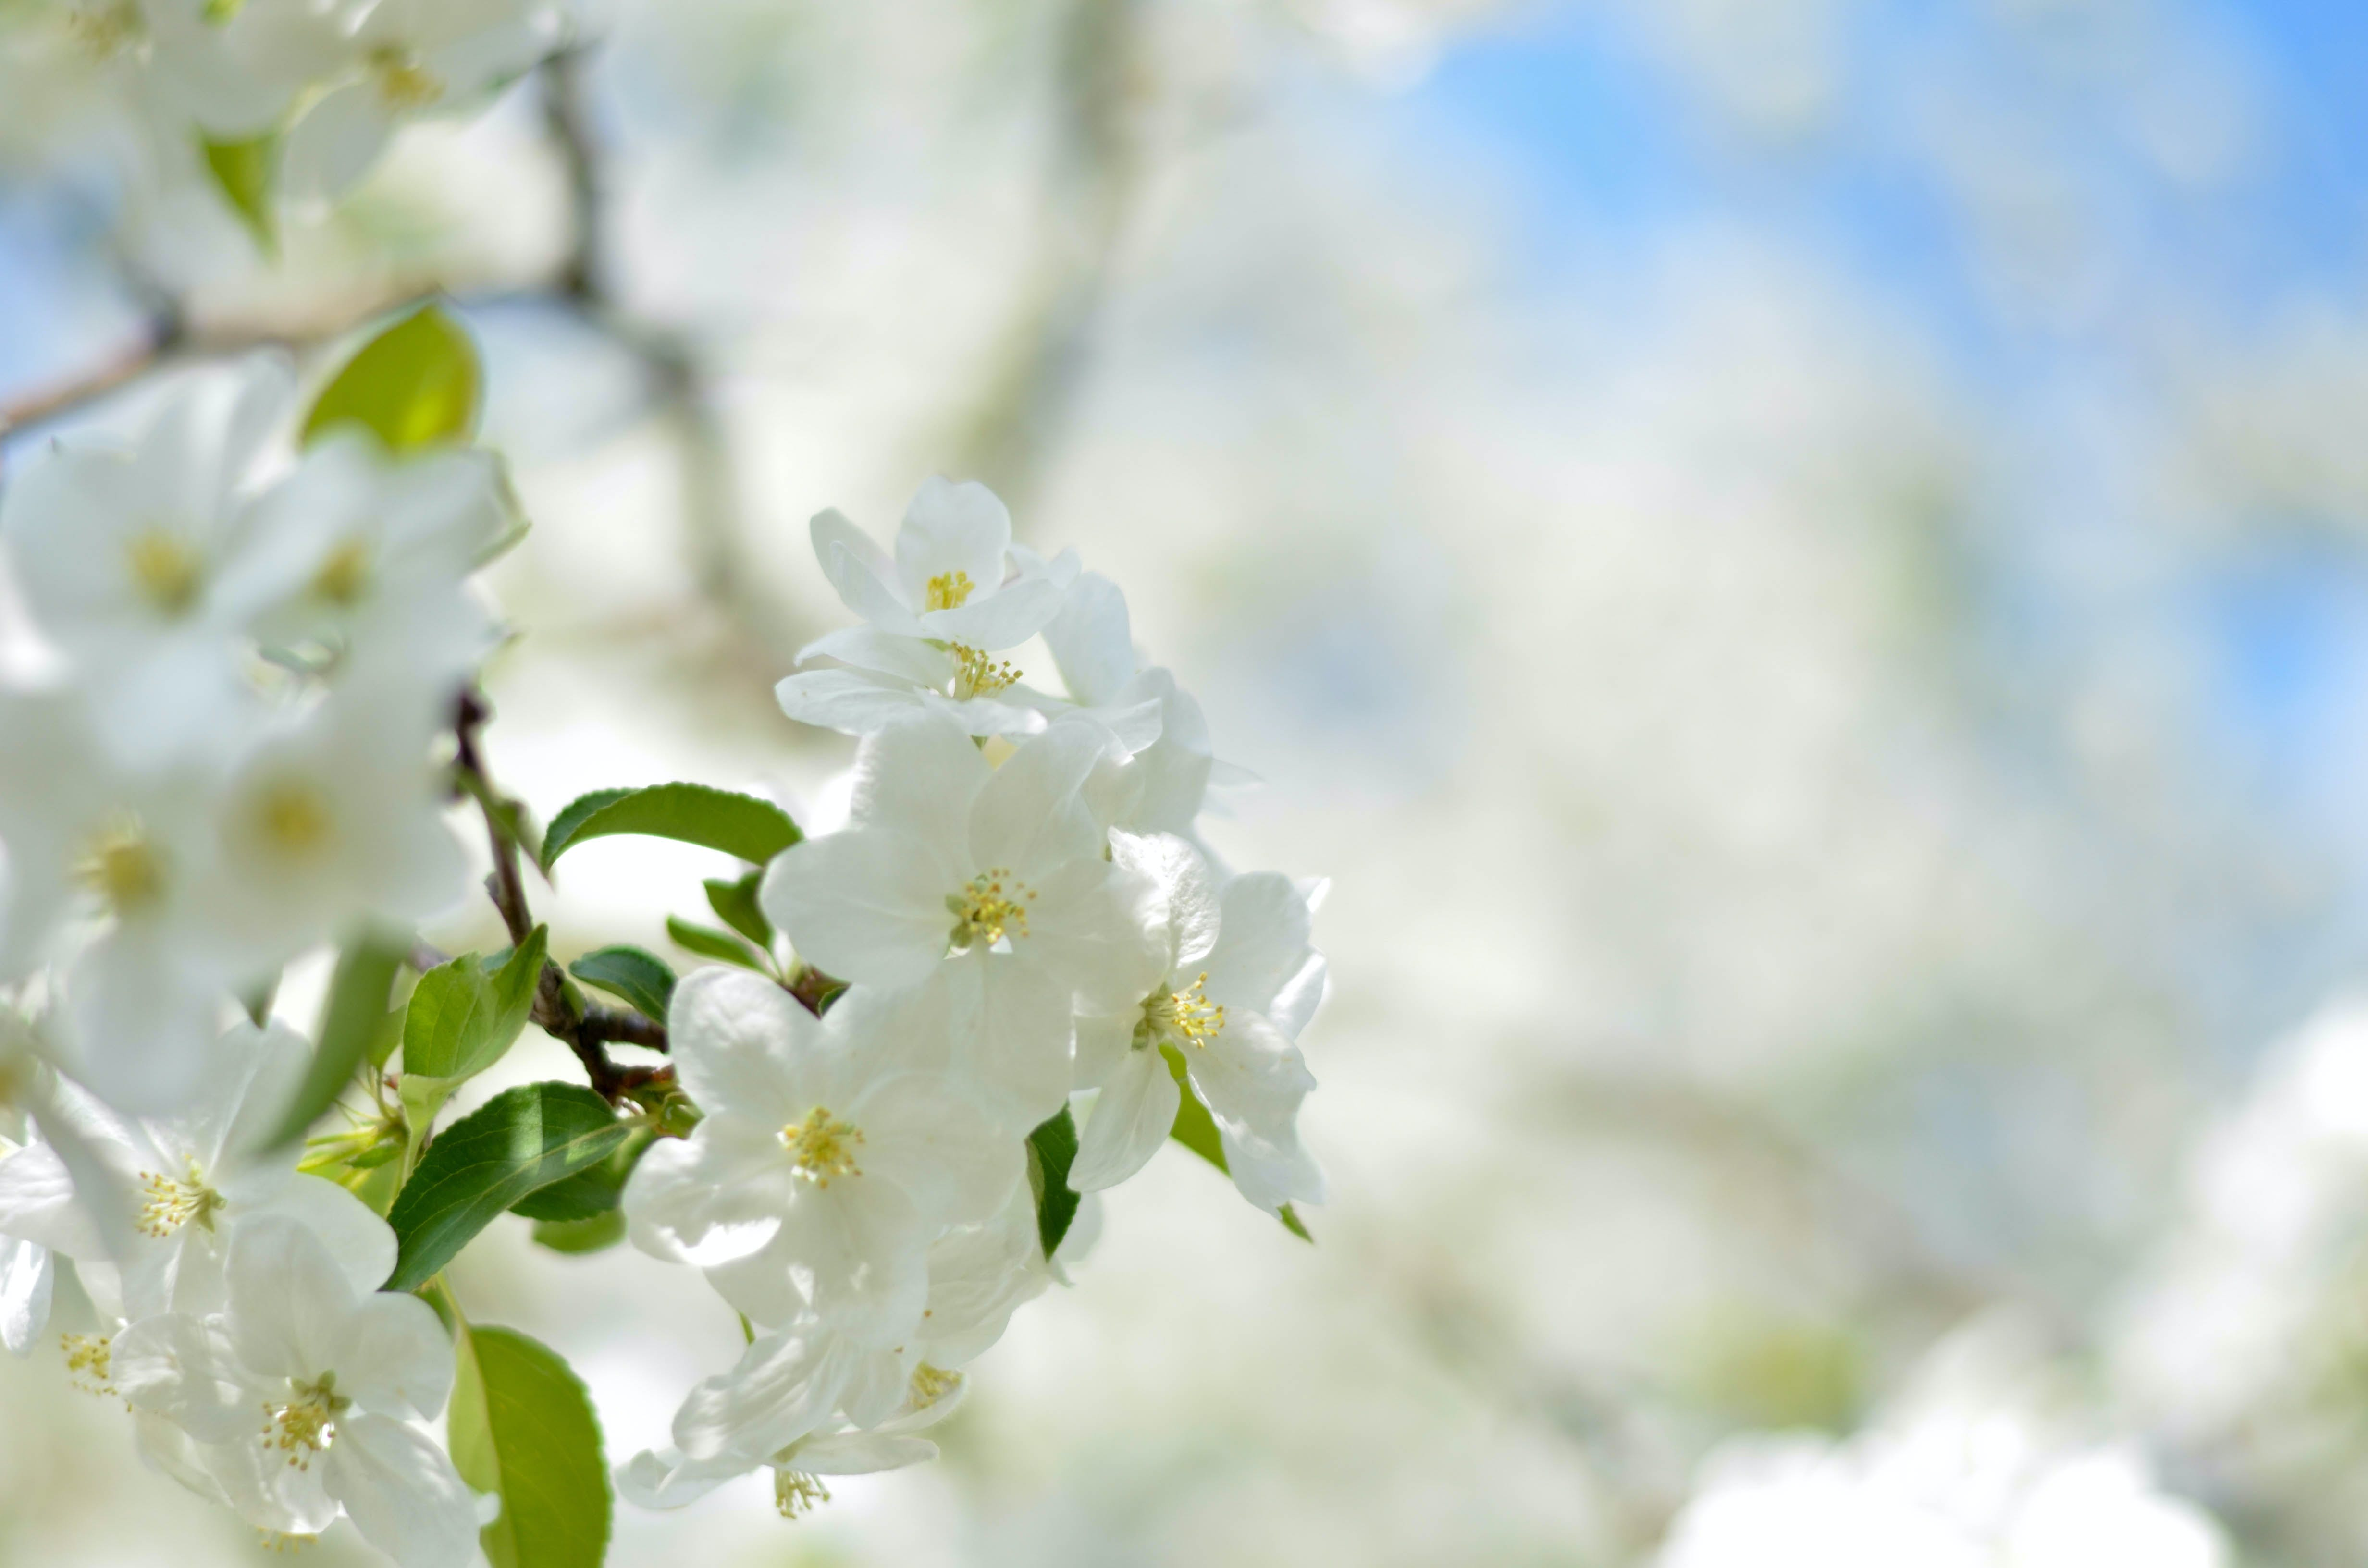 White Flower Picture during Daytime